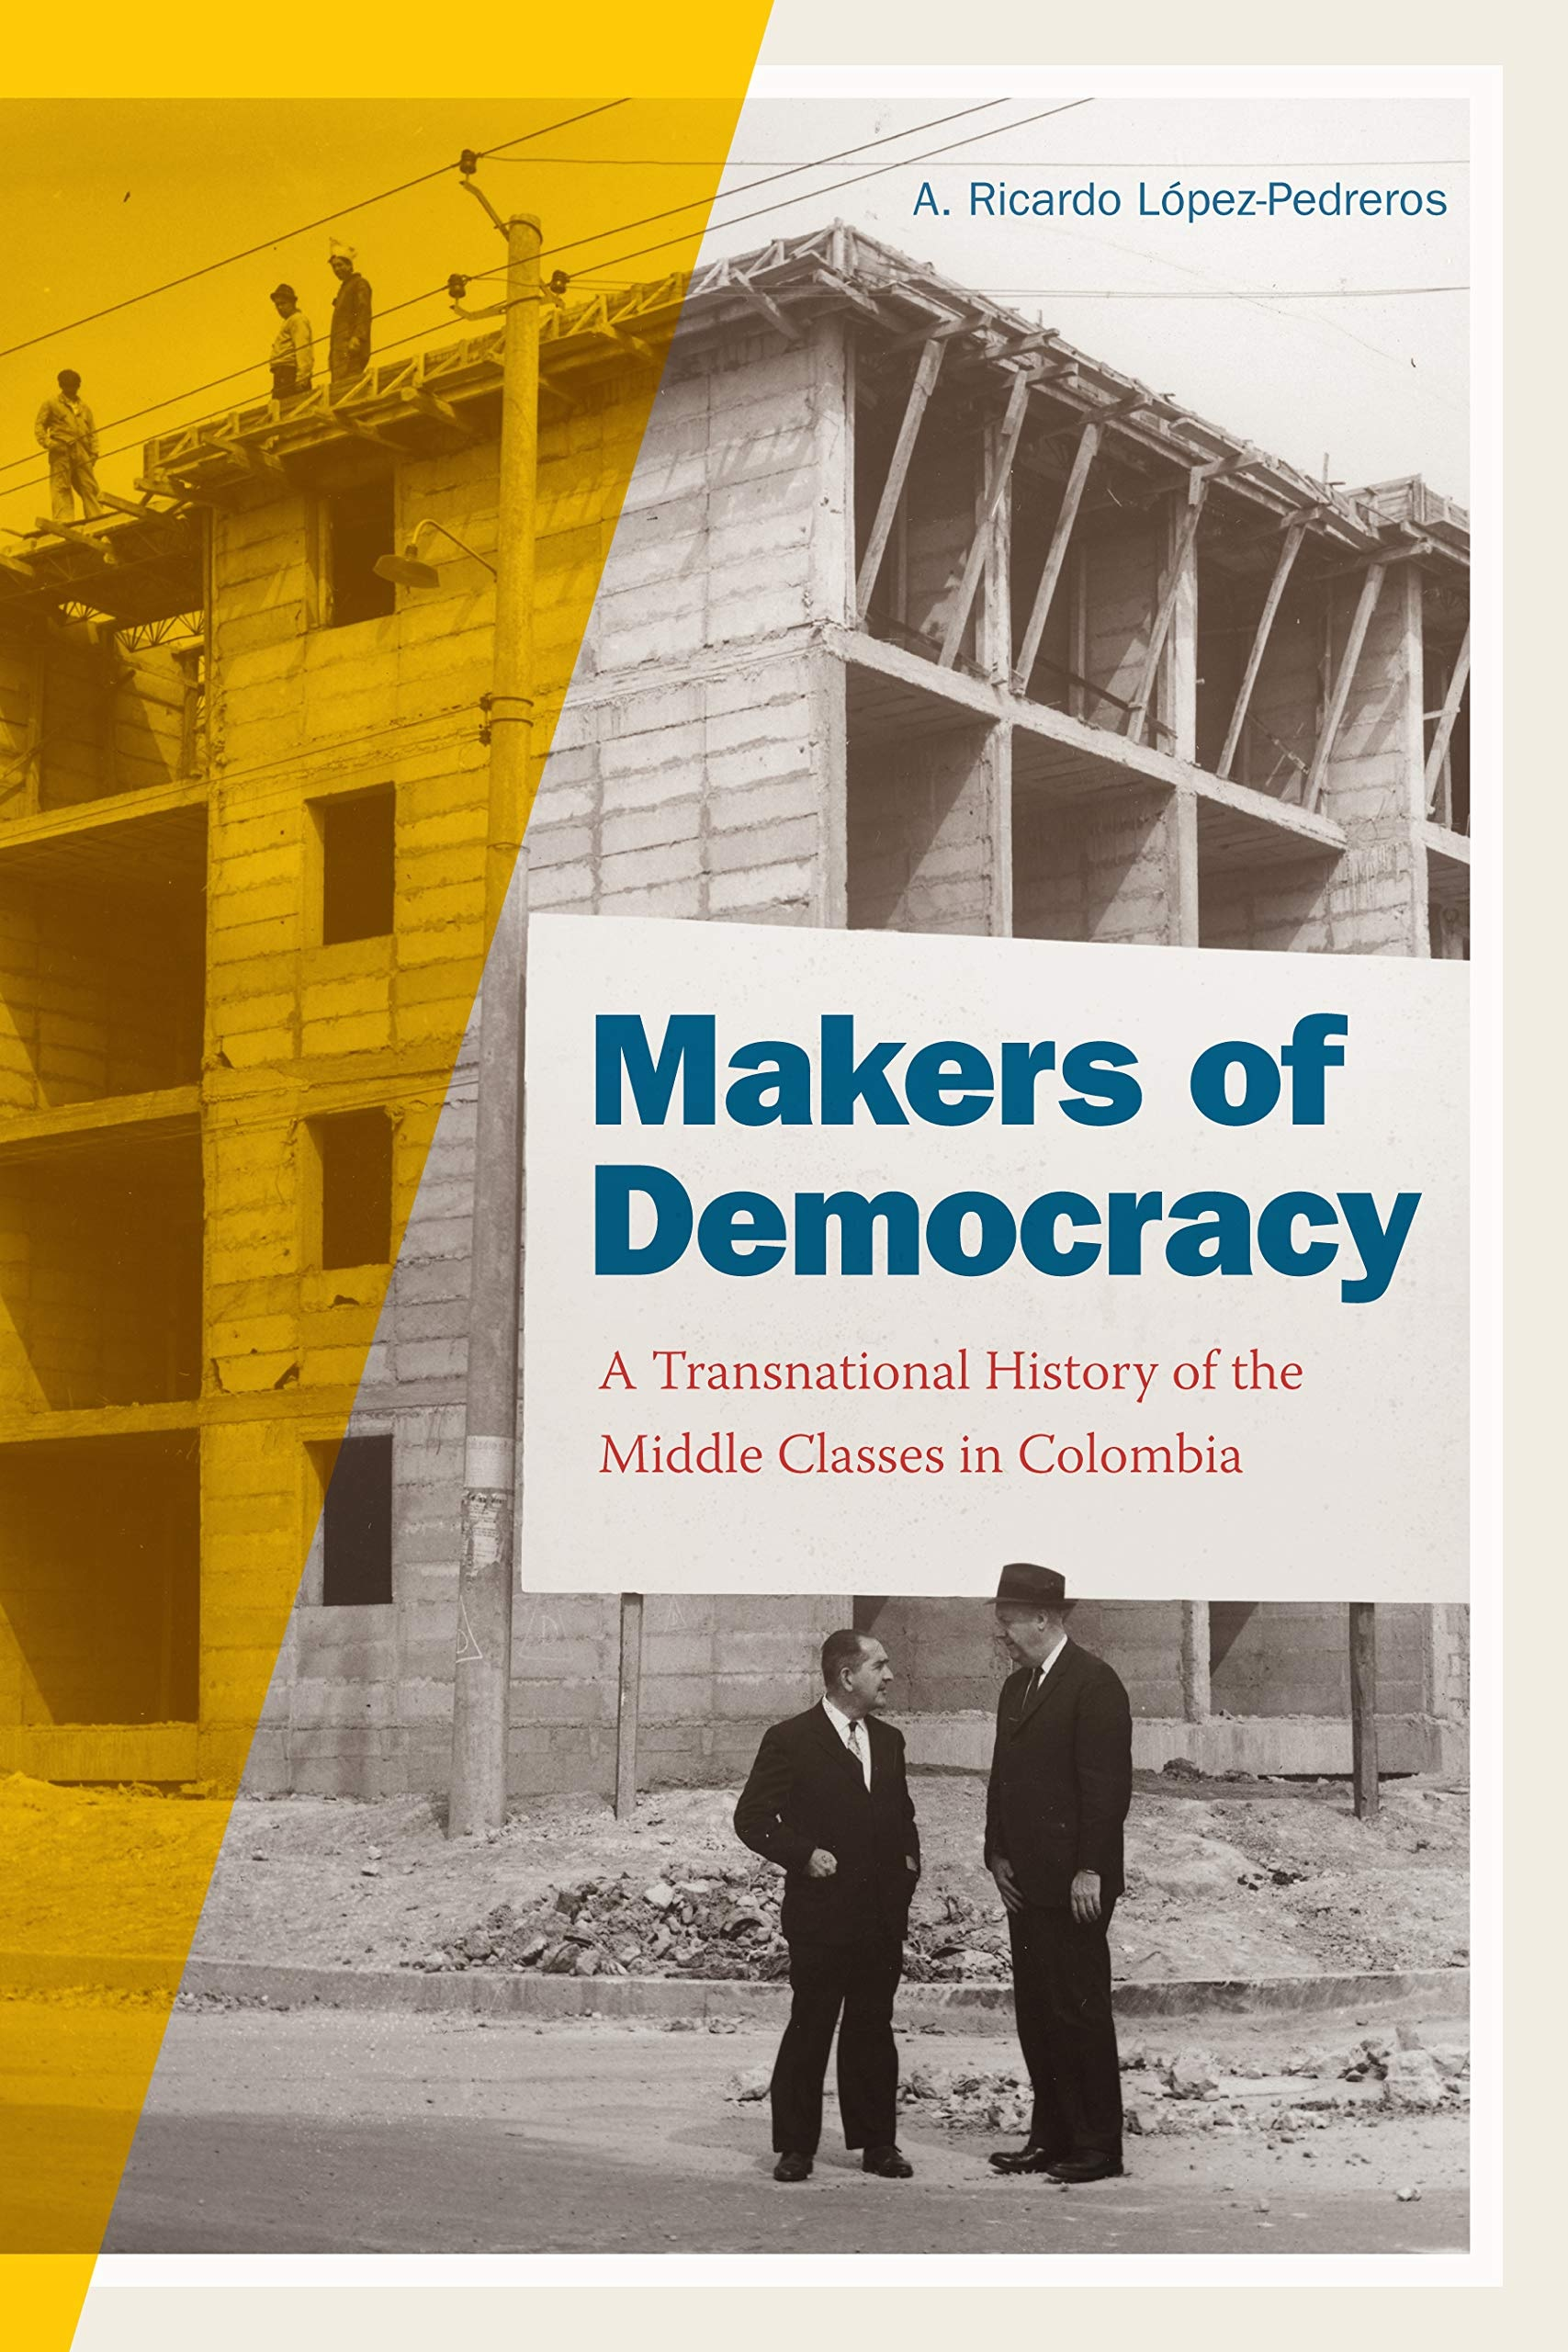 Image of the cover for the book, Makers of Democracy: A Transnational History of the Middle Classes in Colombia, by A. Ricardo López-Pedreros.